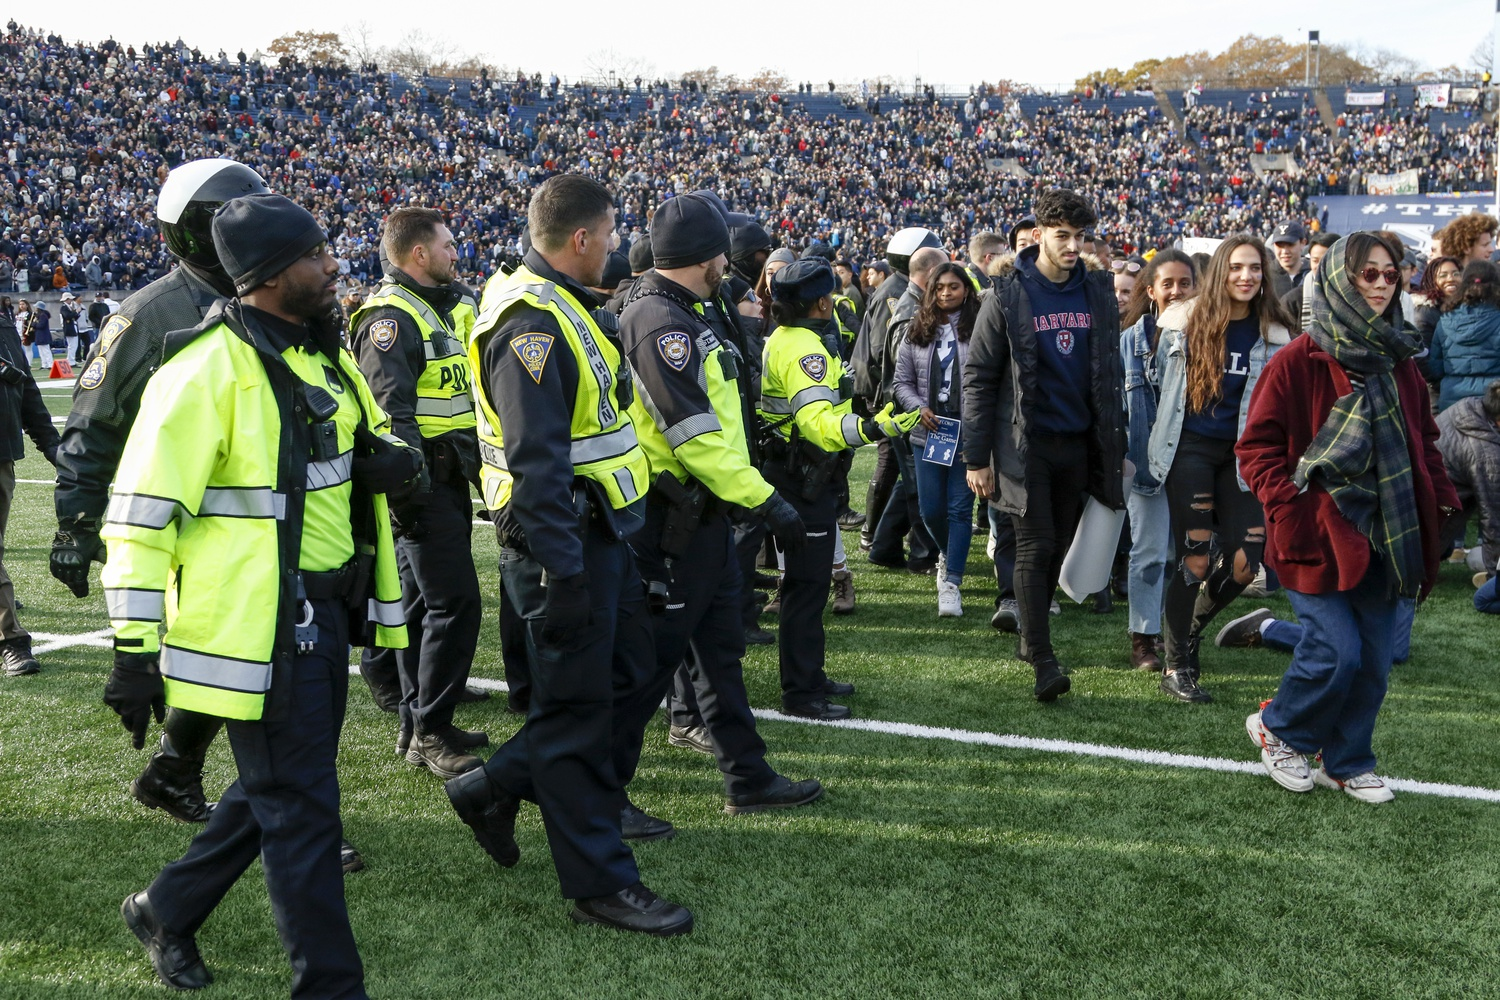 Dozens of police officers walked onto the field during The Game to urge protesters to leave.